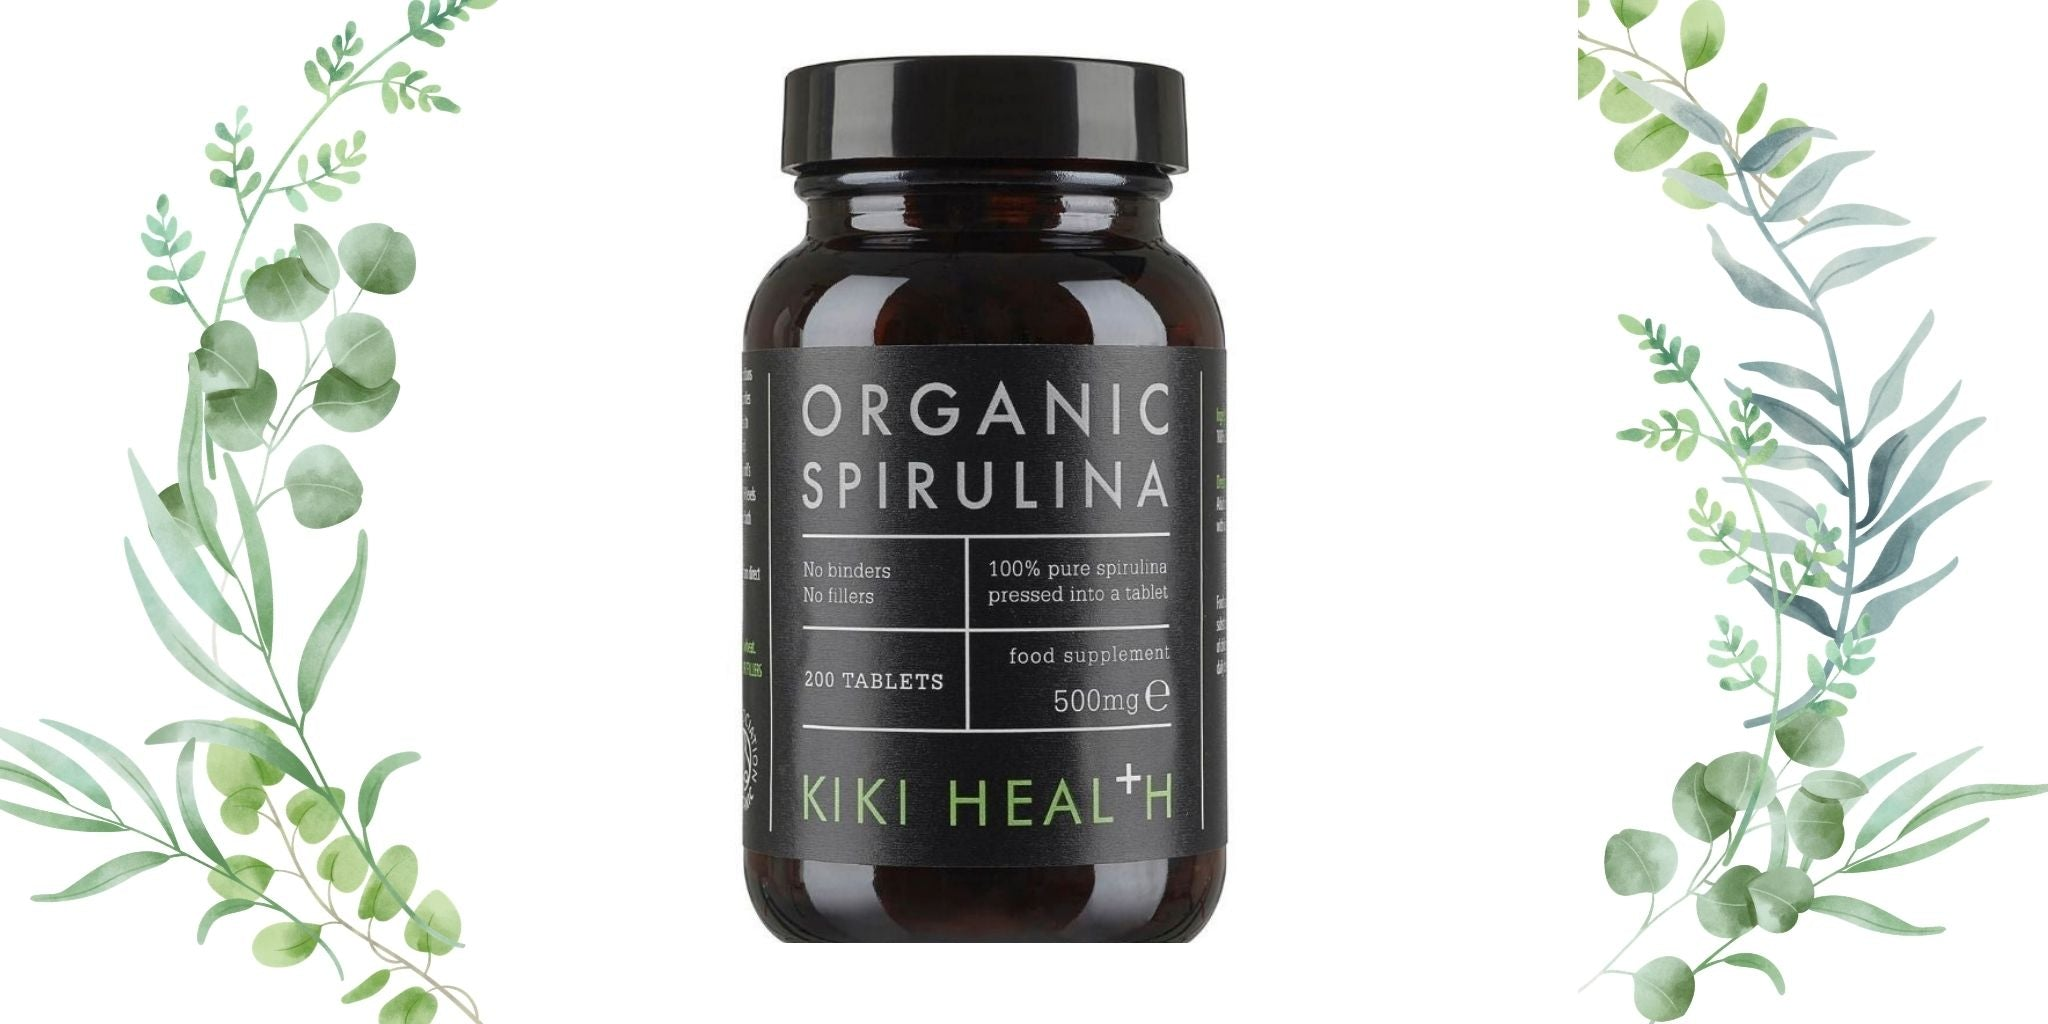 Organic Spirulina tablets in the UK and its benefits